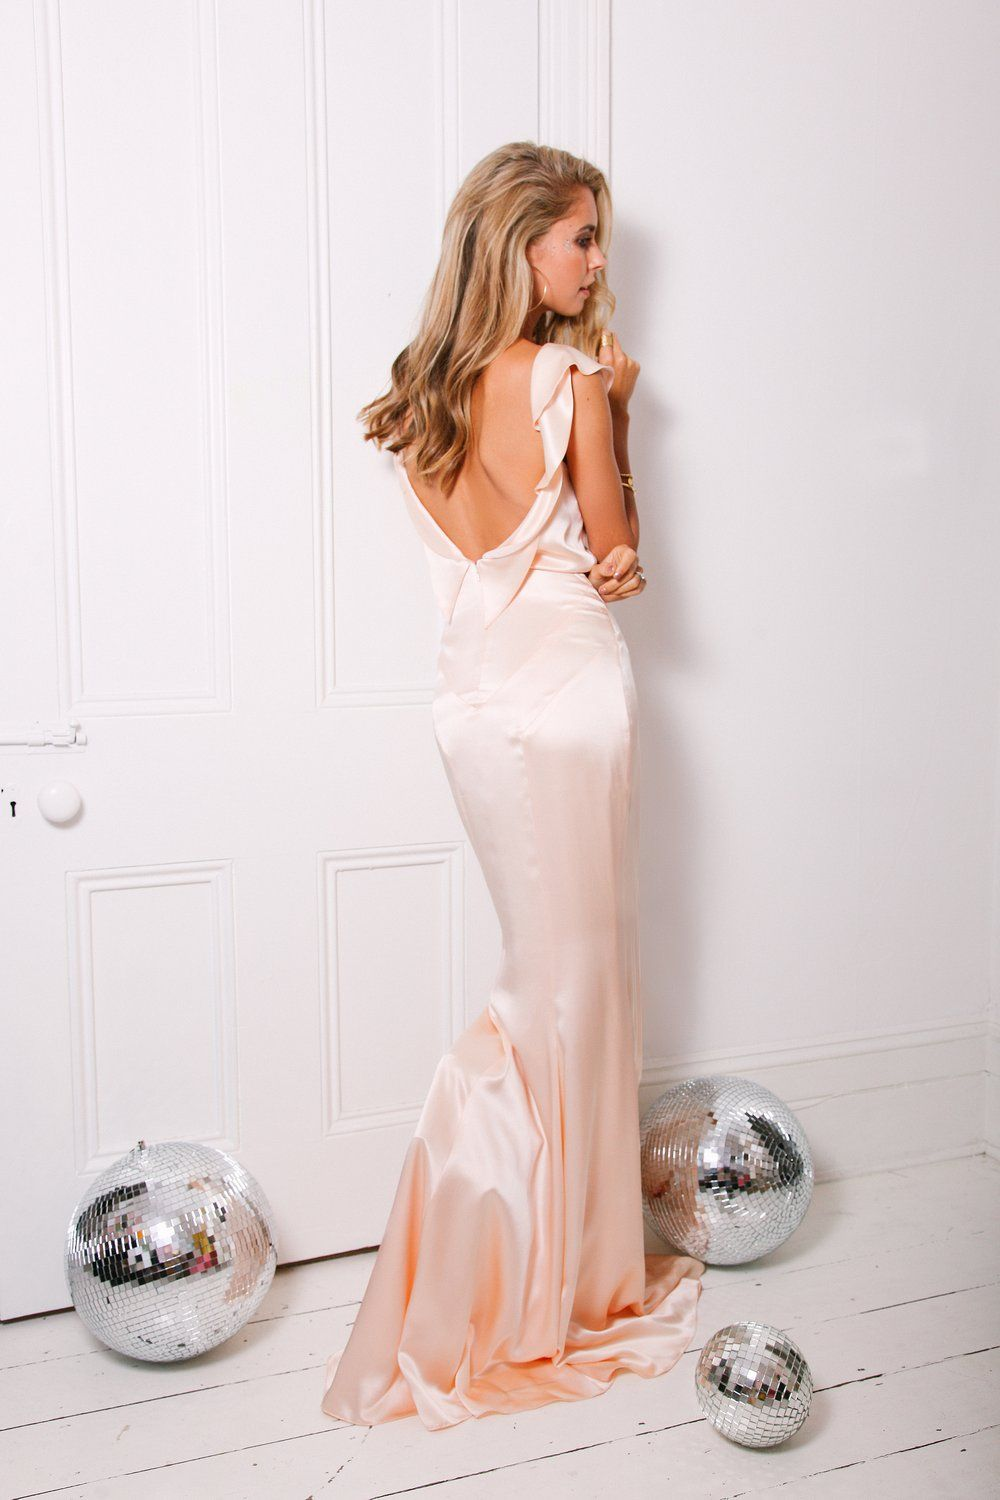 Satin backless wedding dress  ROSE PETAL DRESS  EDITORIAL   Belle u Bunty Bridal Collection